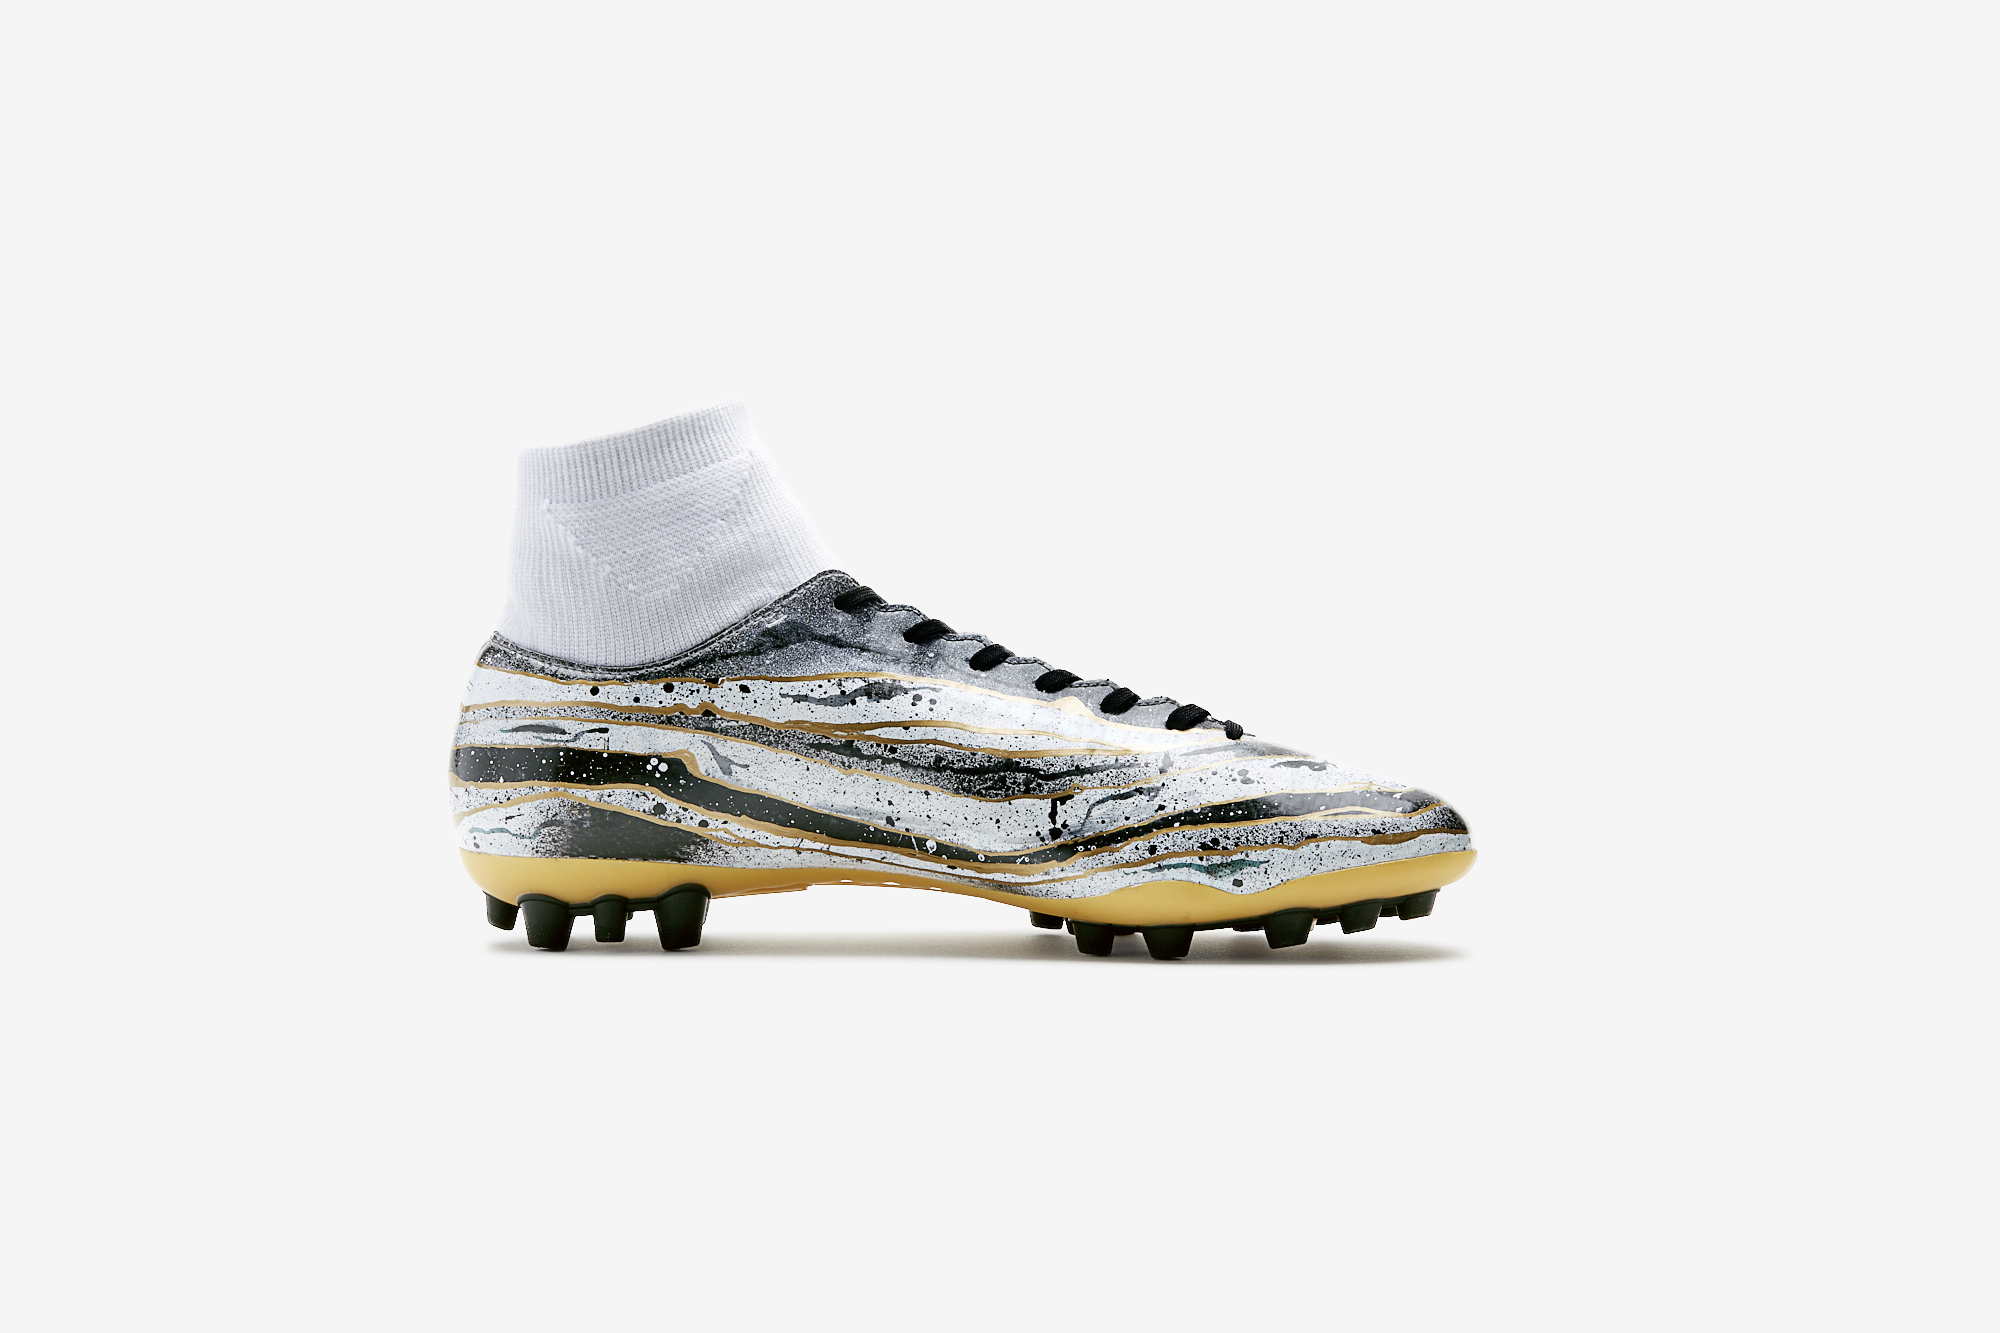 J1340_2017_7_22_NIKE_CR7_Cultural_Exhibition_Product_Shoot_001.jpg